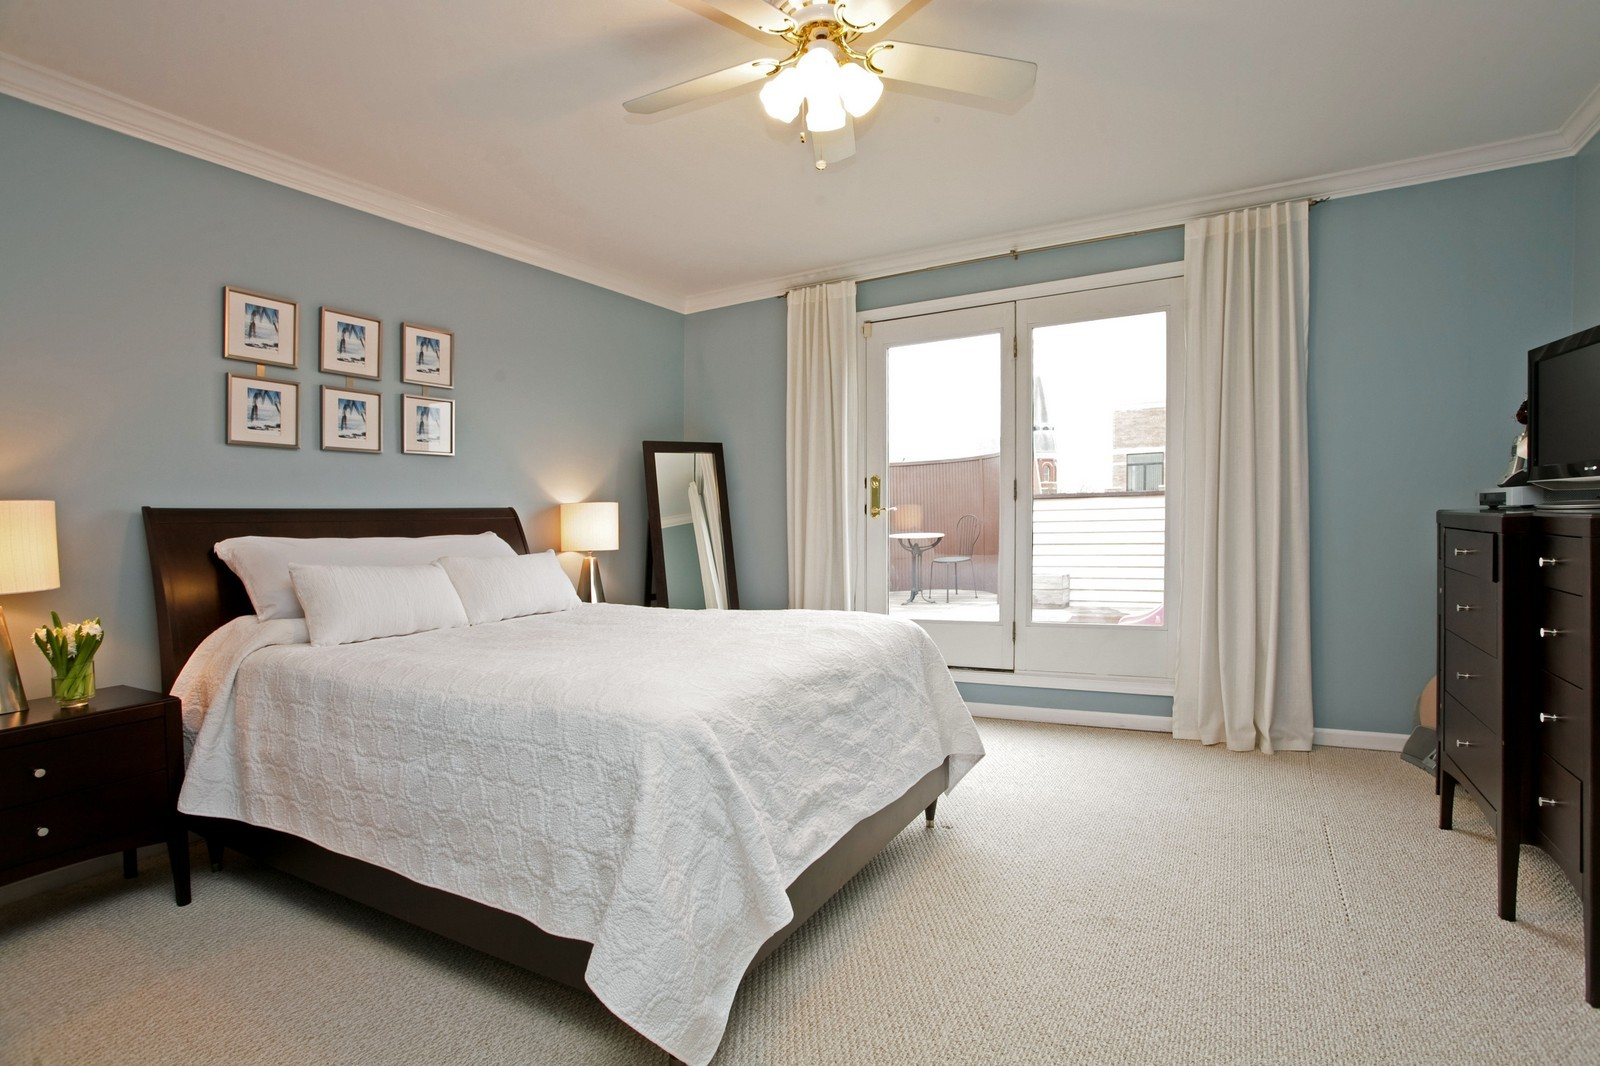 Real Estate Photography - 1700 W Chicago Ave, Unit B, Chicago, IL, 60622 - Master Bedroom